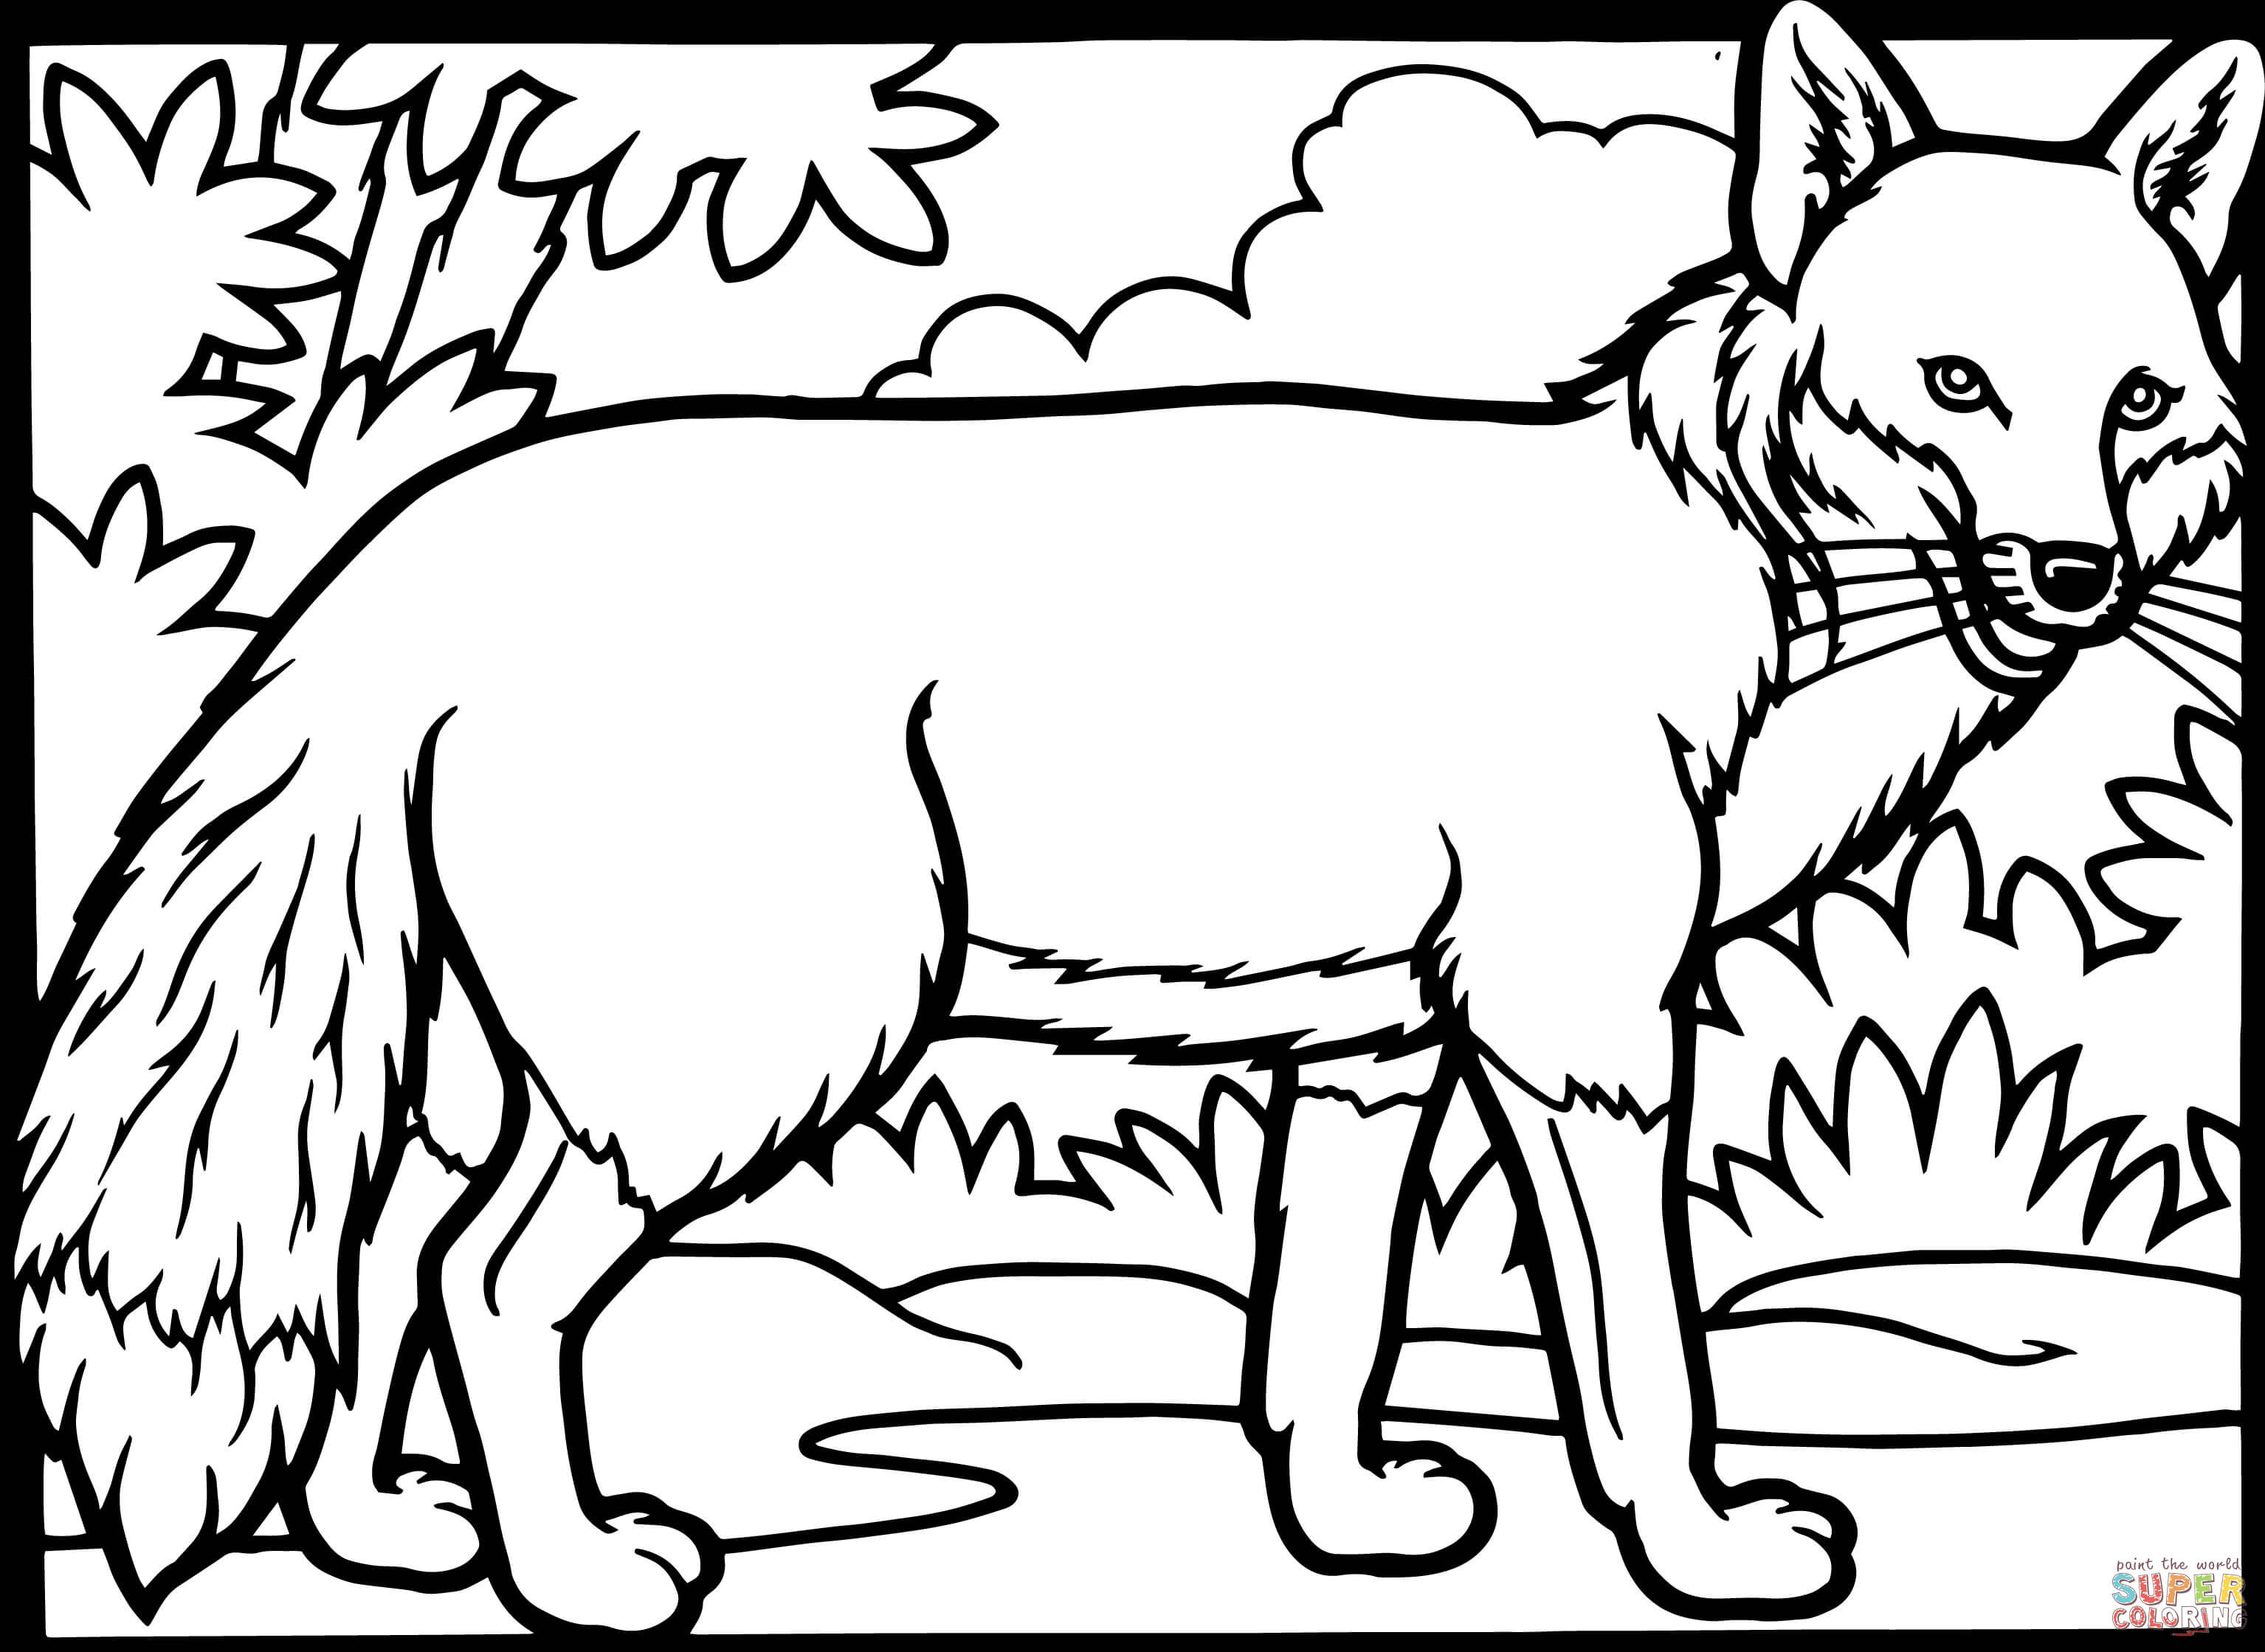 red fox coloring page free printable coloring pages - Free Printable Coloring Pages